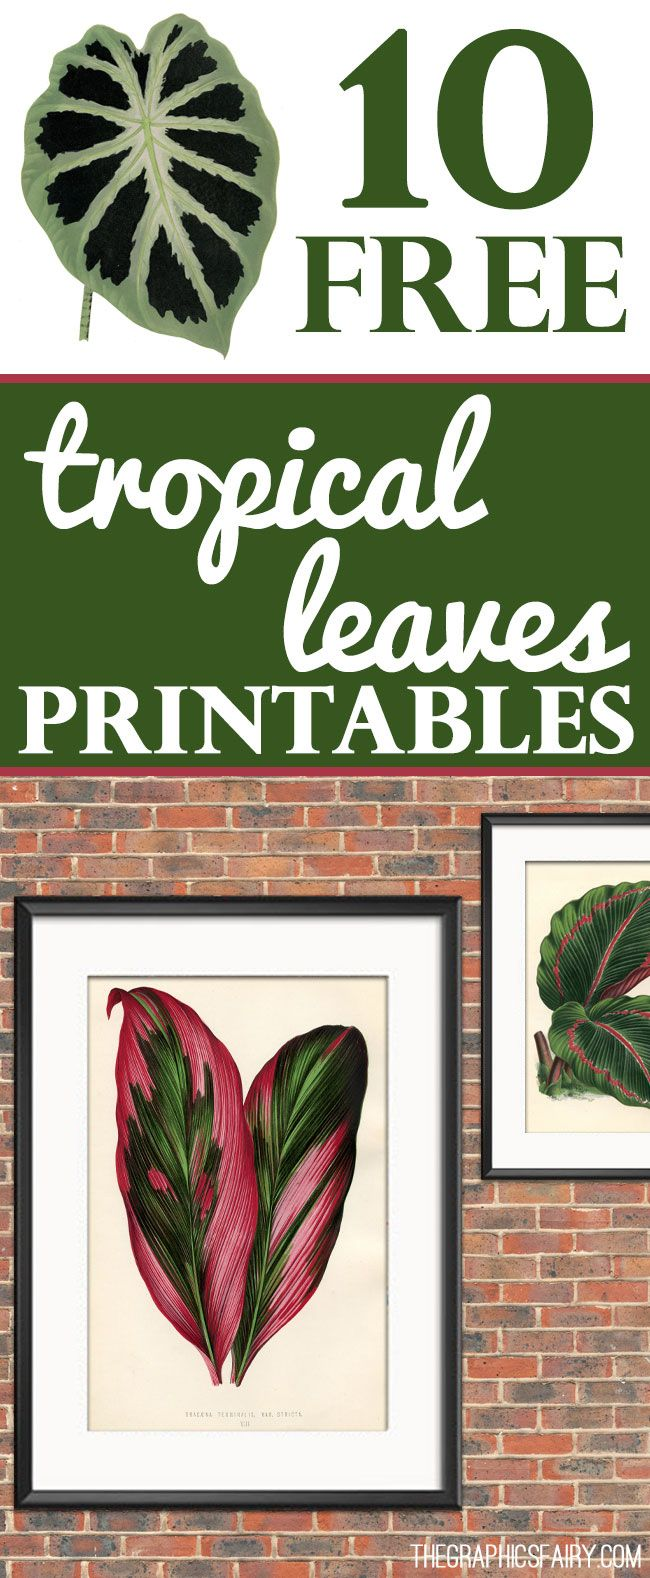 Home Decor Photos Free free interior design ideas for home decor 10 Free Tropical Leaves Printables